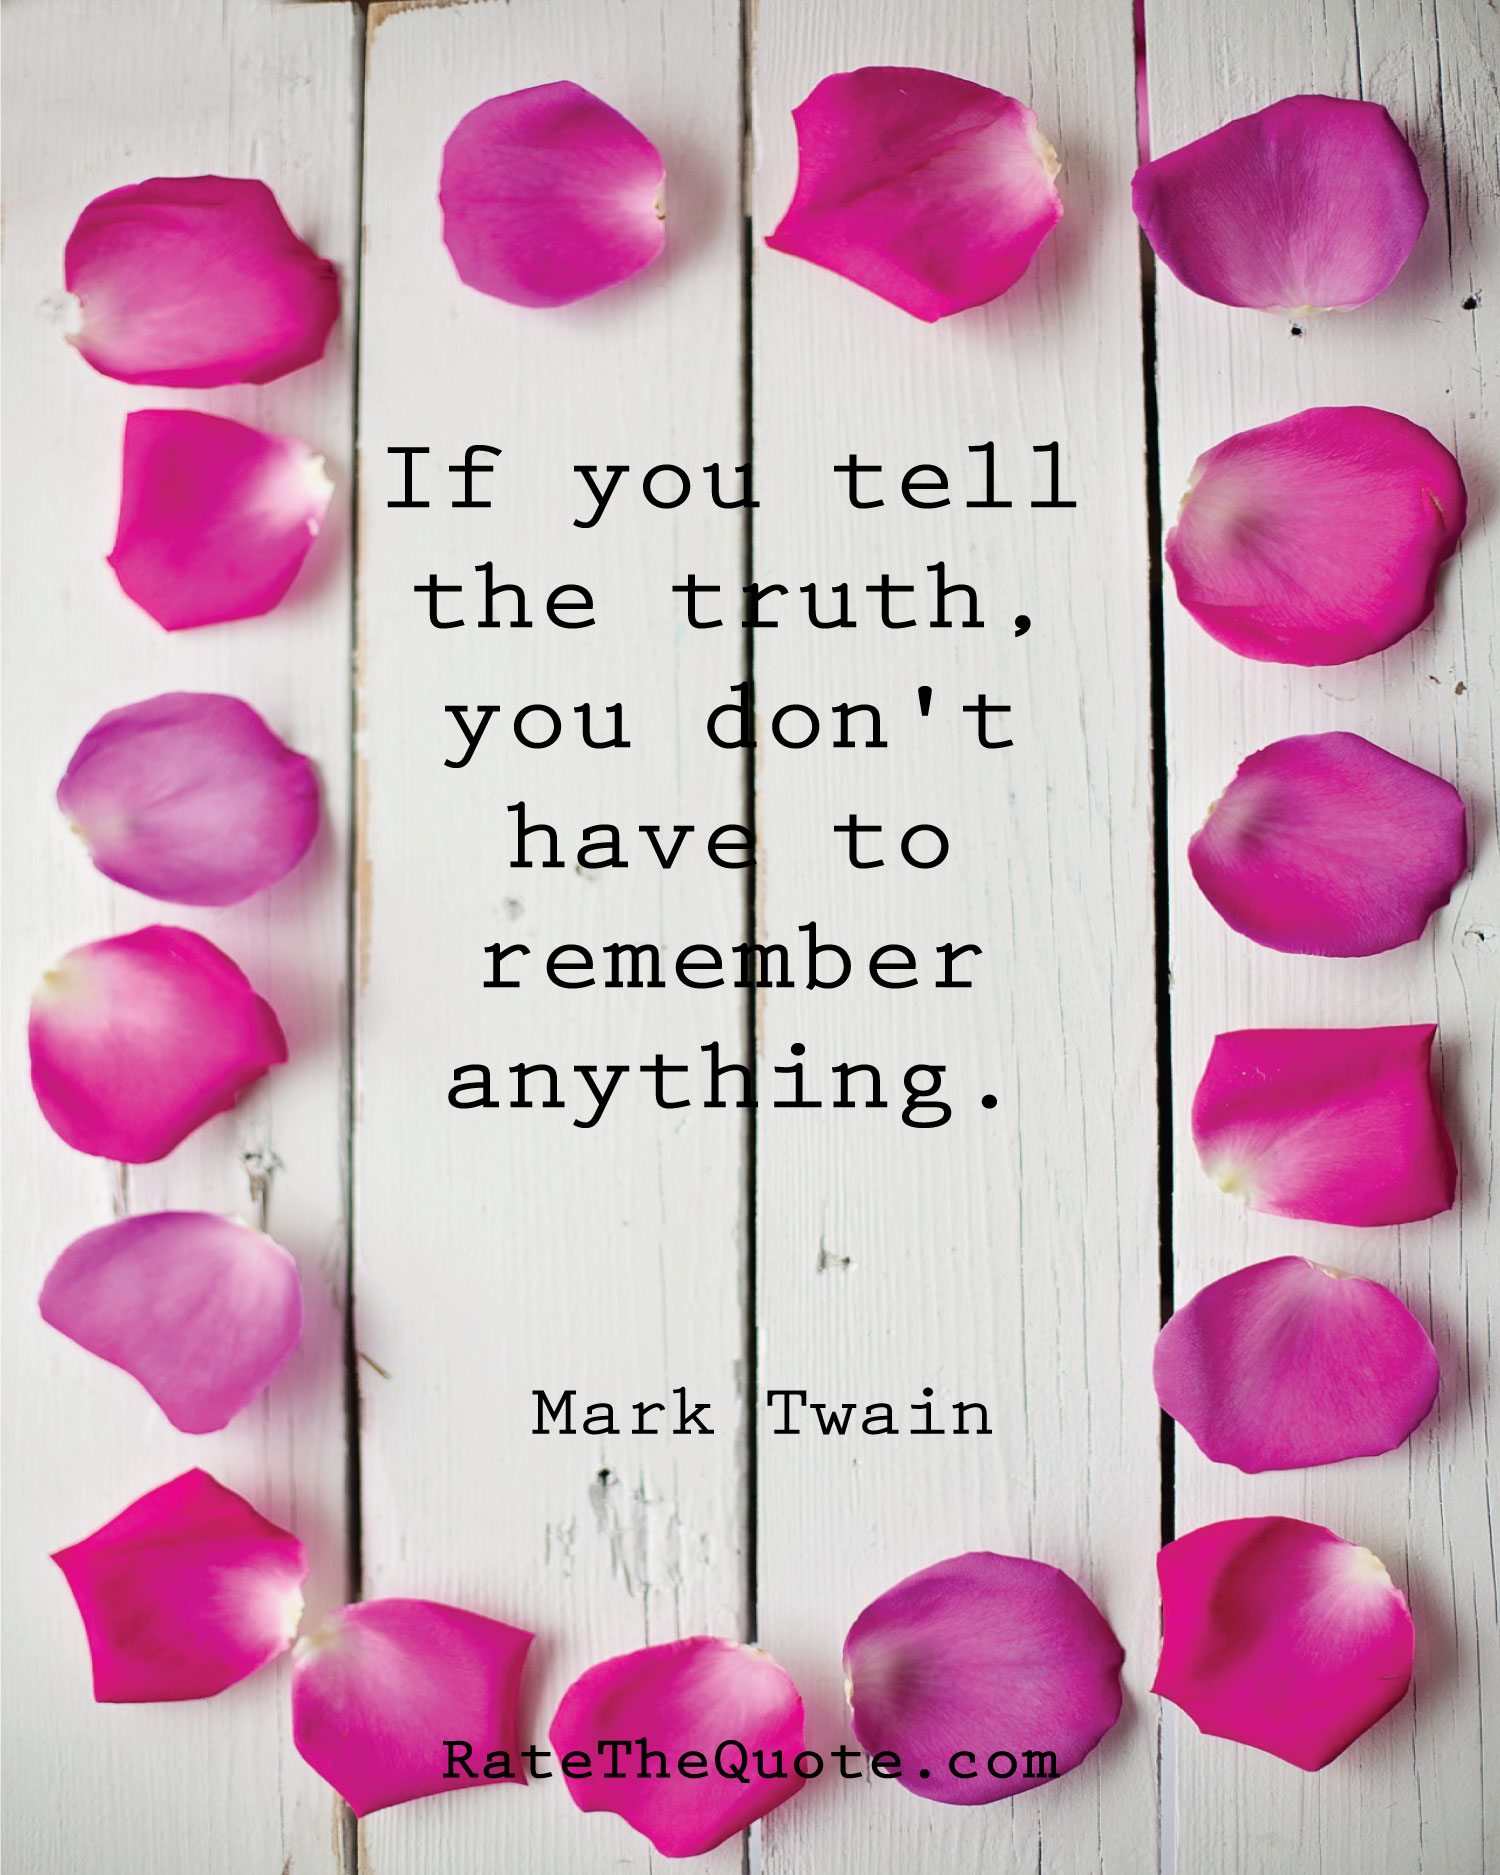 If you tell the truth, you don't have to remember anything. Mark Twain